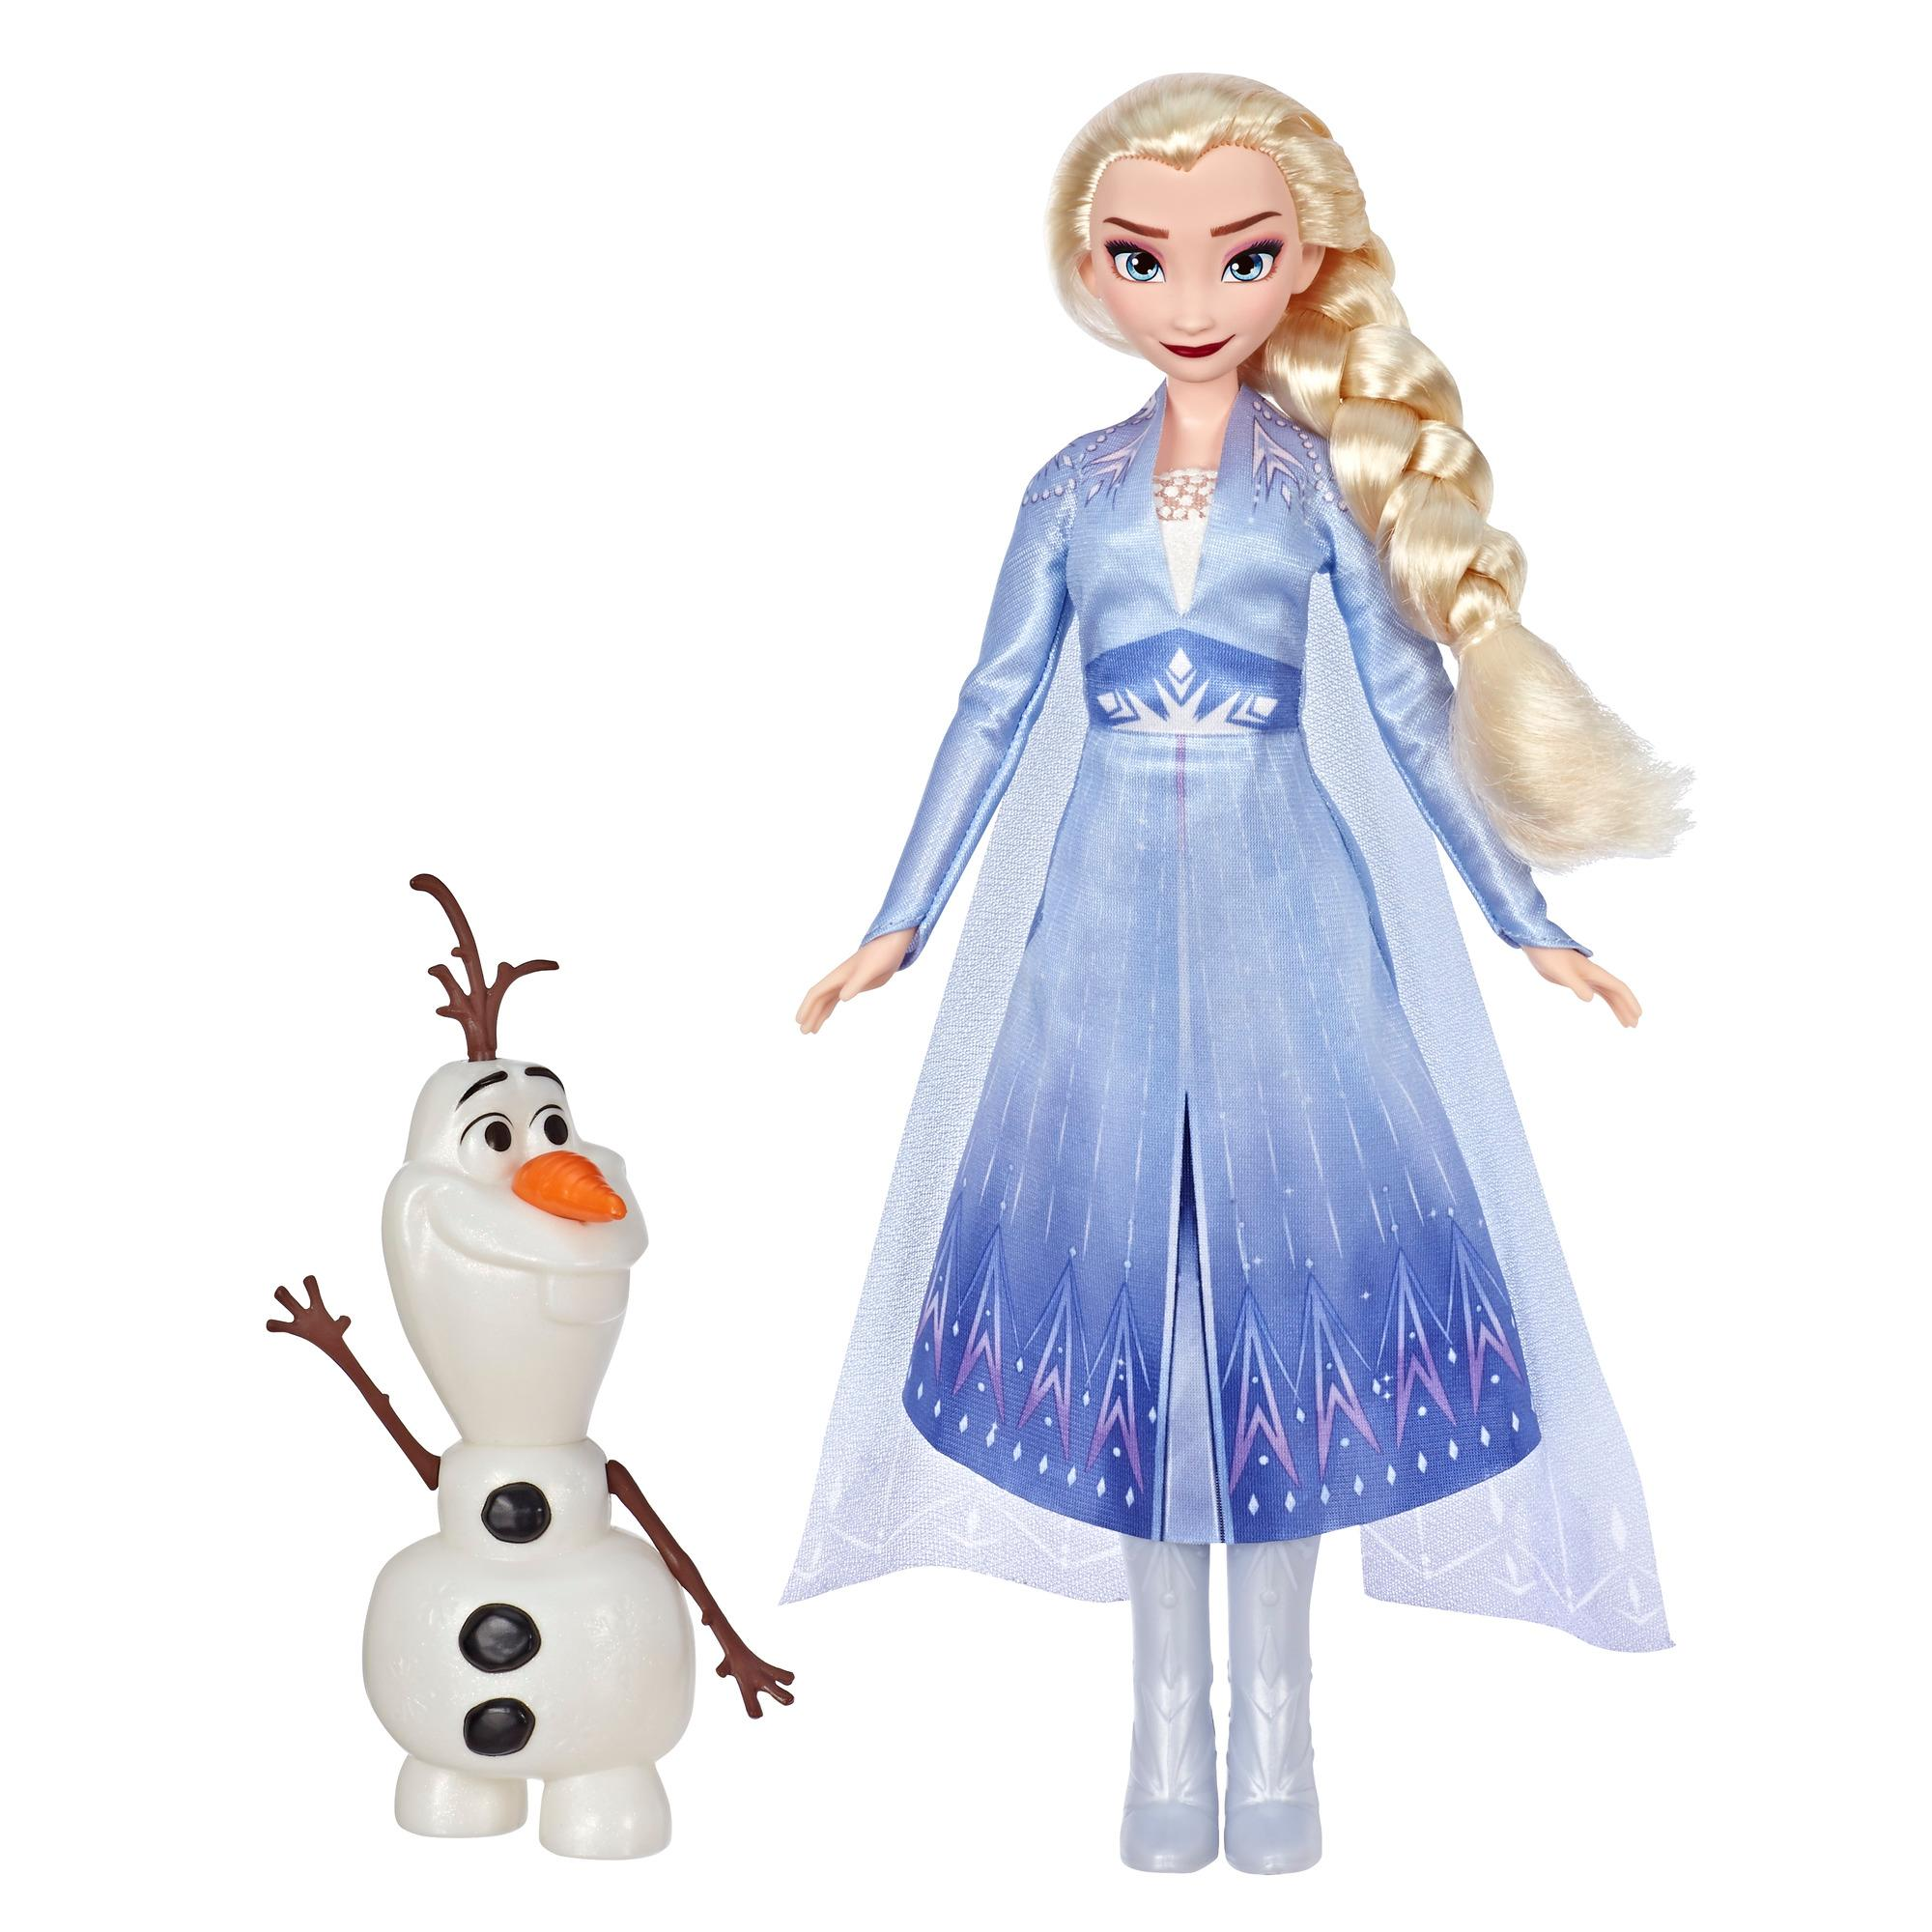 Disney Frozen Elsa and Olaf, Fashion Doll and Friend, With Long Blonde Hair and Blue Outfit Inspired by Frozen 2